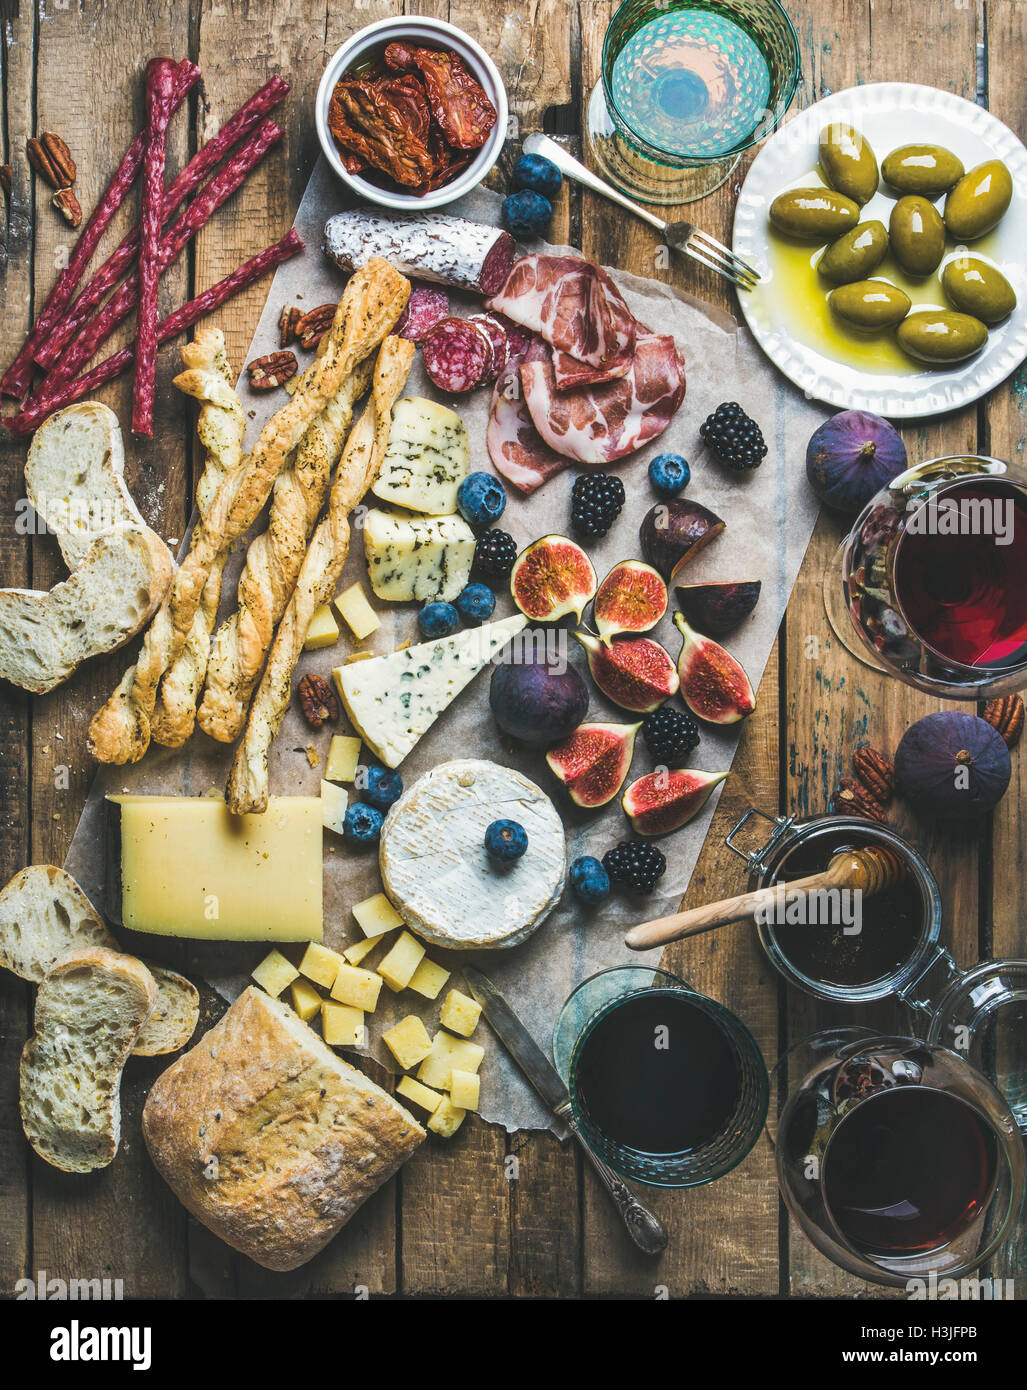 Wine and snack set with various wines in glasses, meat variety, bread, green olives, sun-dried tomatoes, figs, nuts - Stock Image